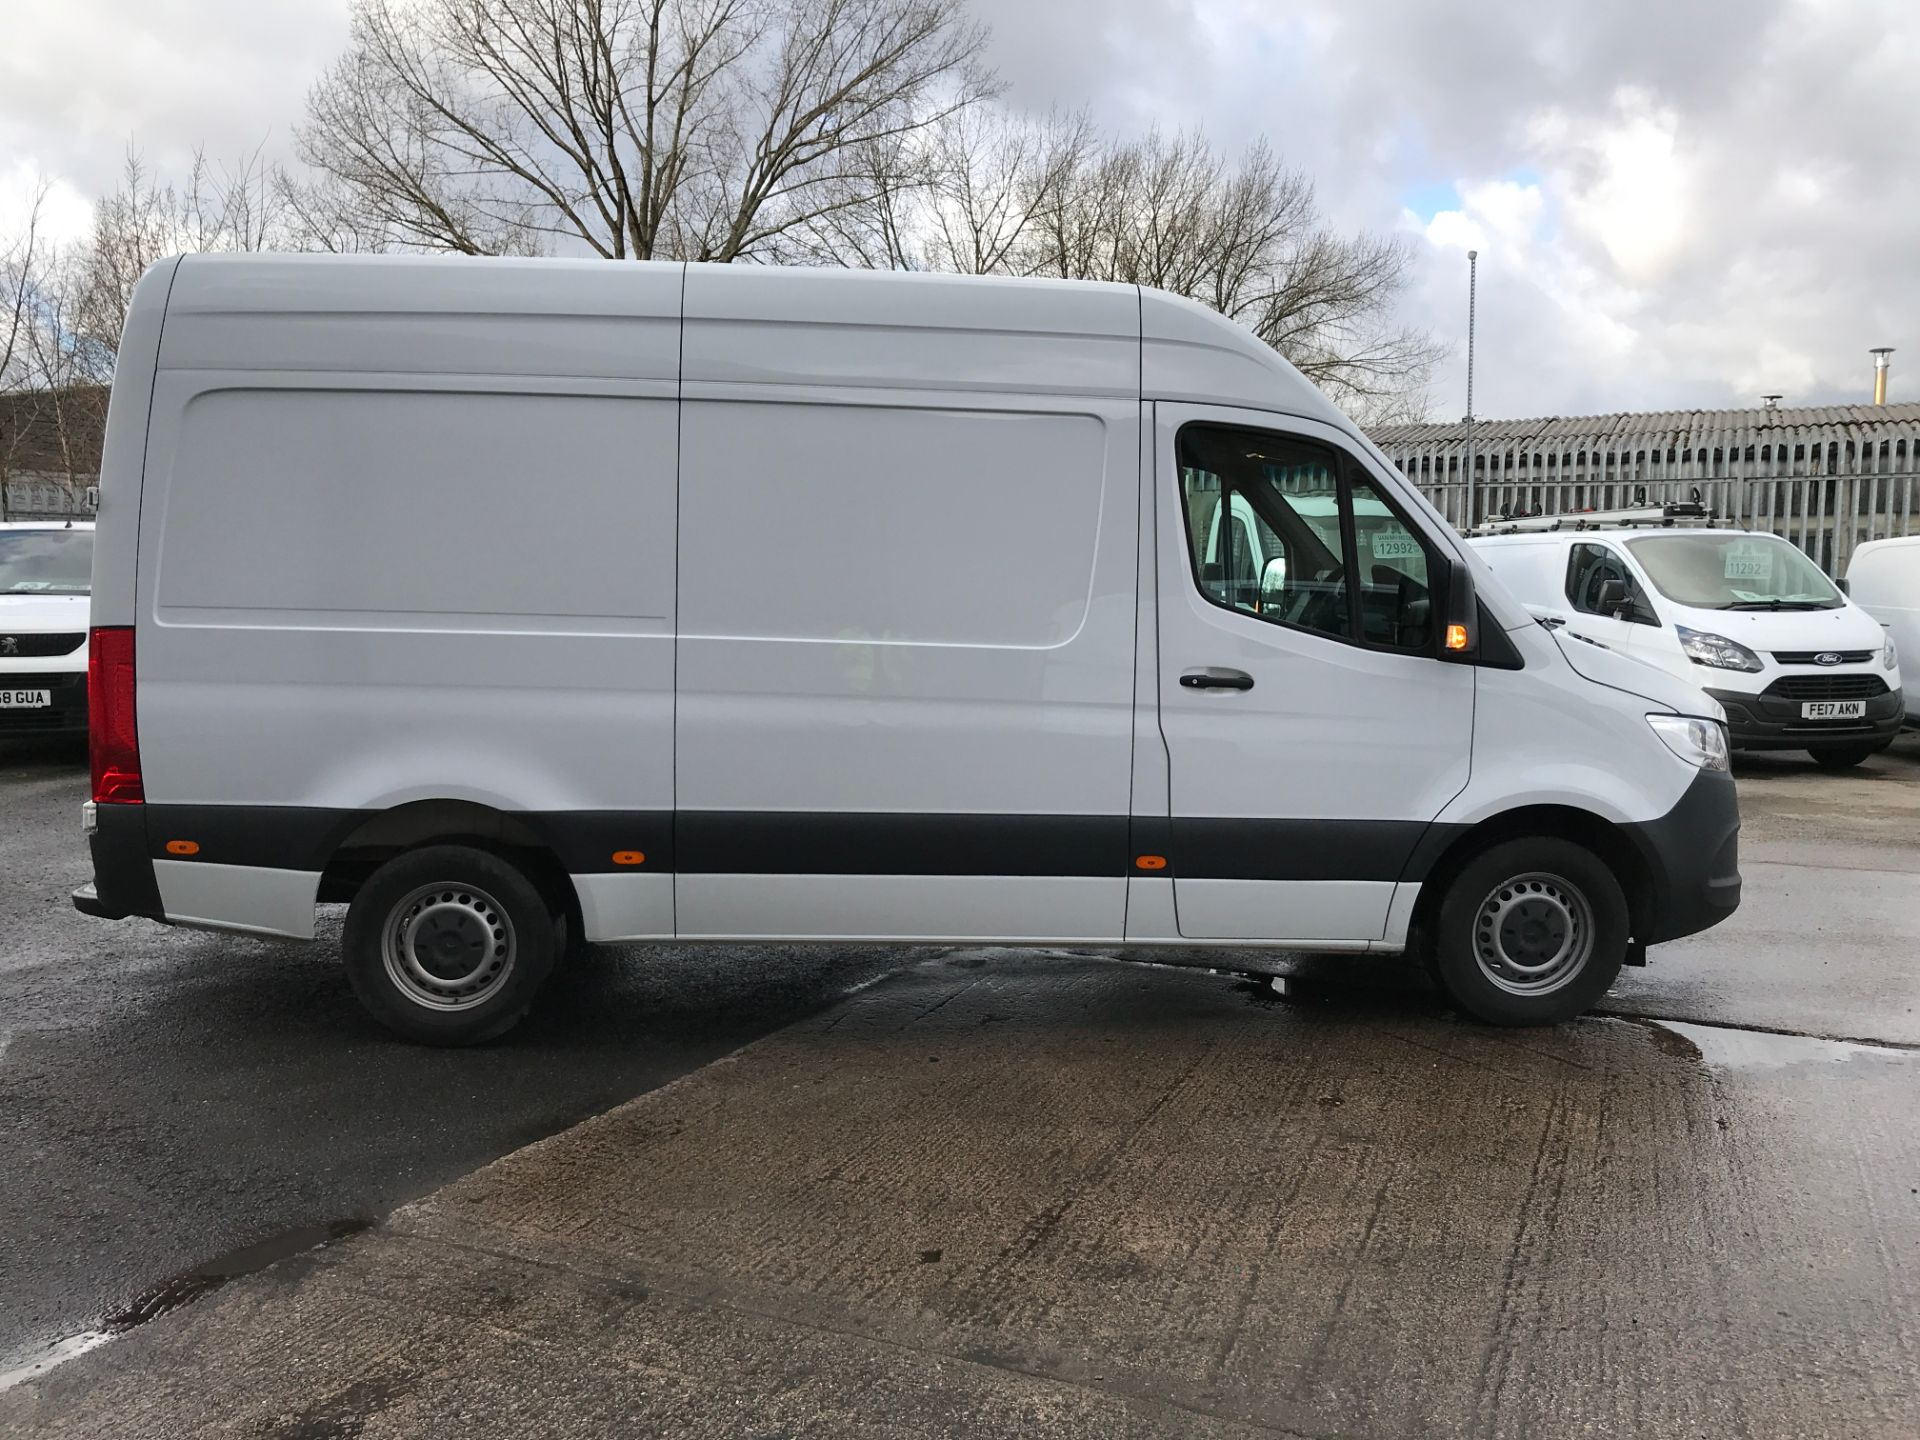 2018 Mercedes-Benz Sprinter 314CDI L2 H2 140PS EURO 6 (KM68UBL) Thumbnail 7